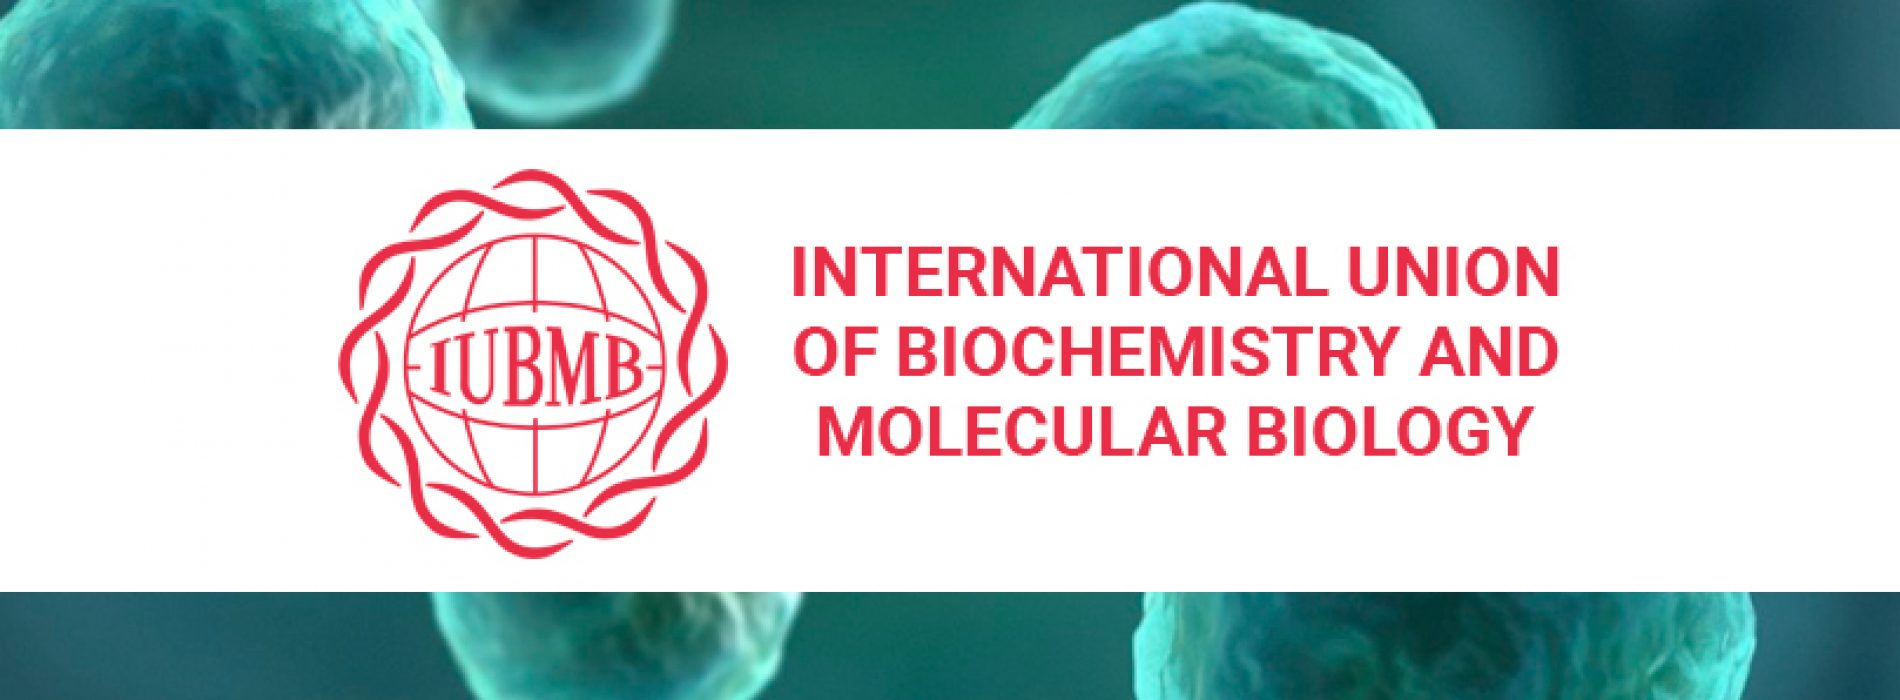 International Union of Biochemistry and Molecular Biology (IUBMB)